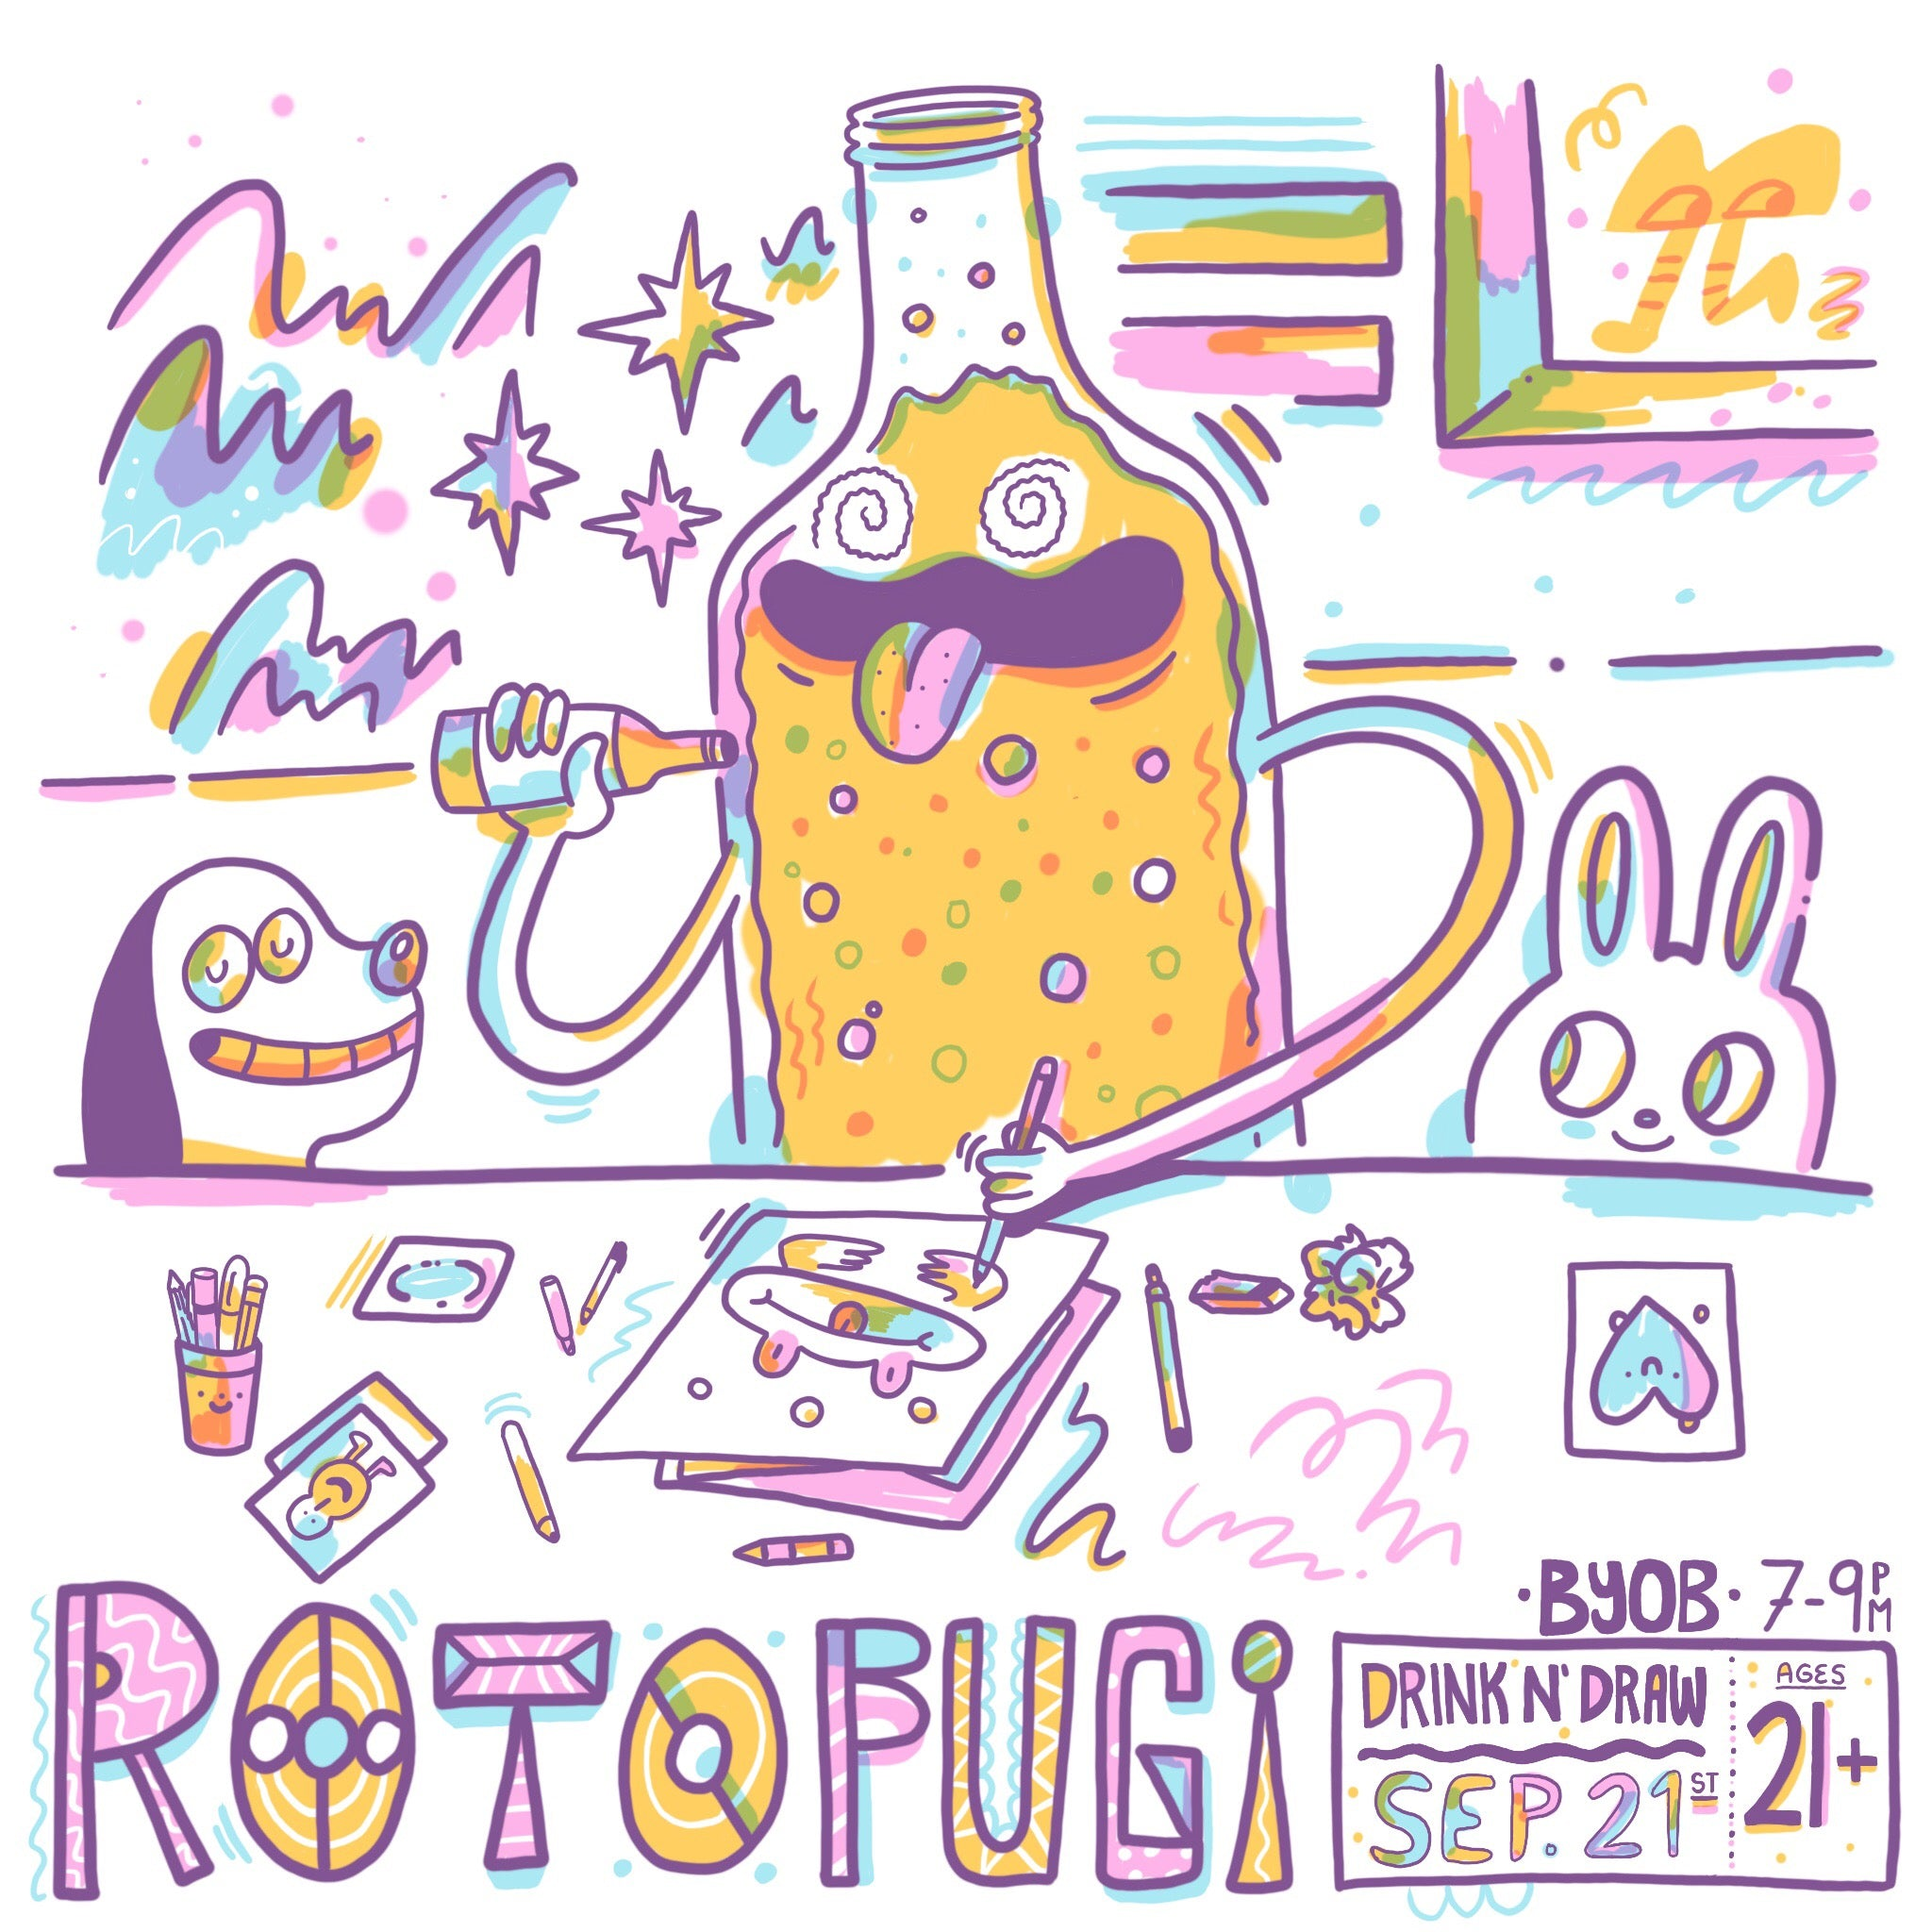 Rotofugi Drink n' Draw September 21, 2017